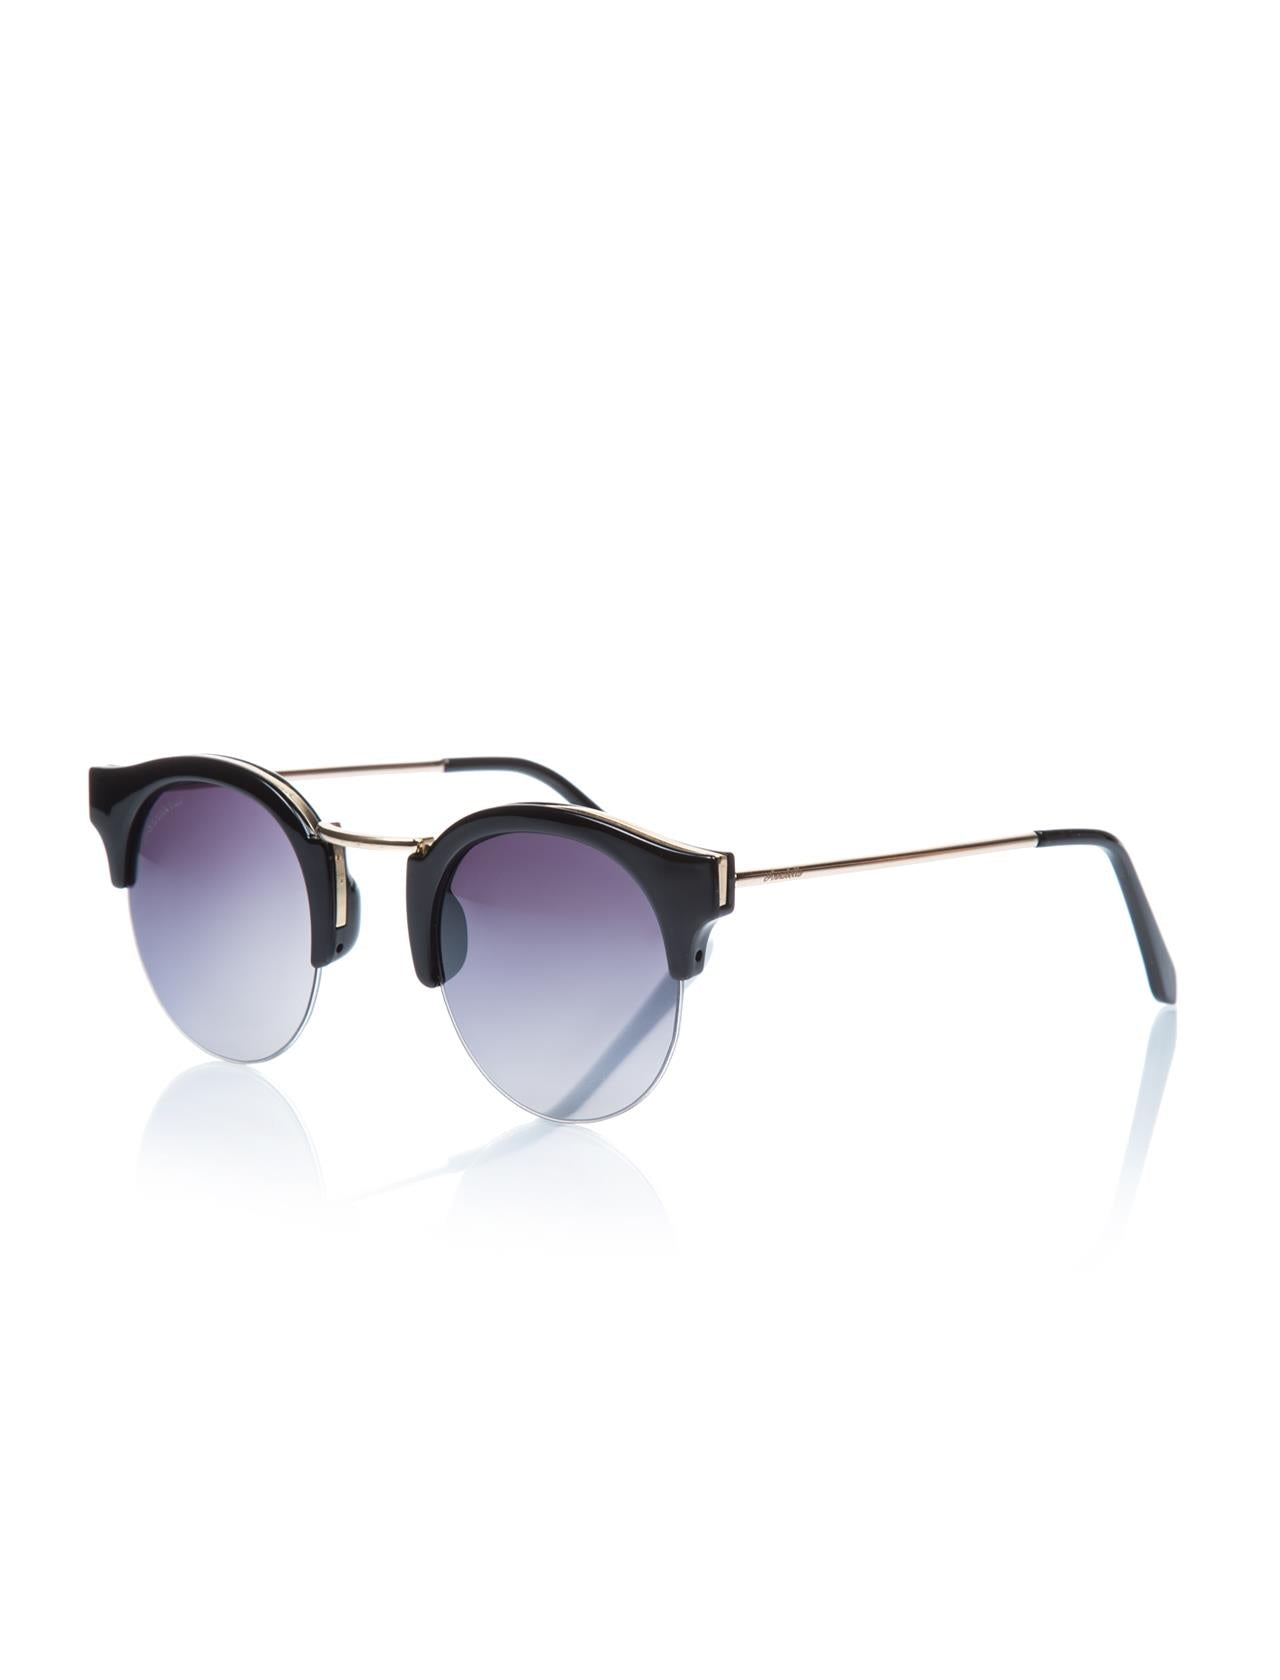 Women's Semi Frame Sunglasses